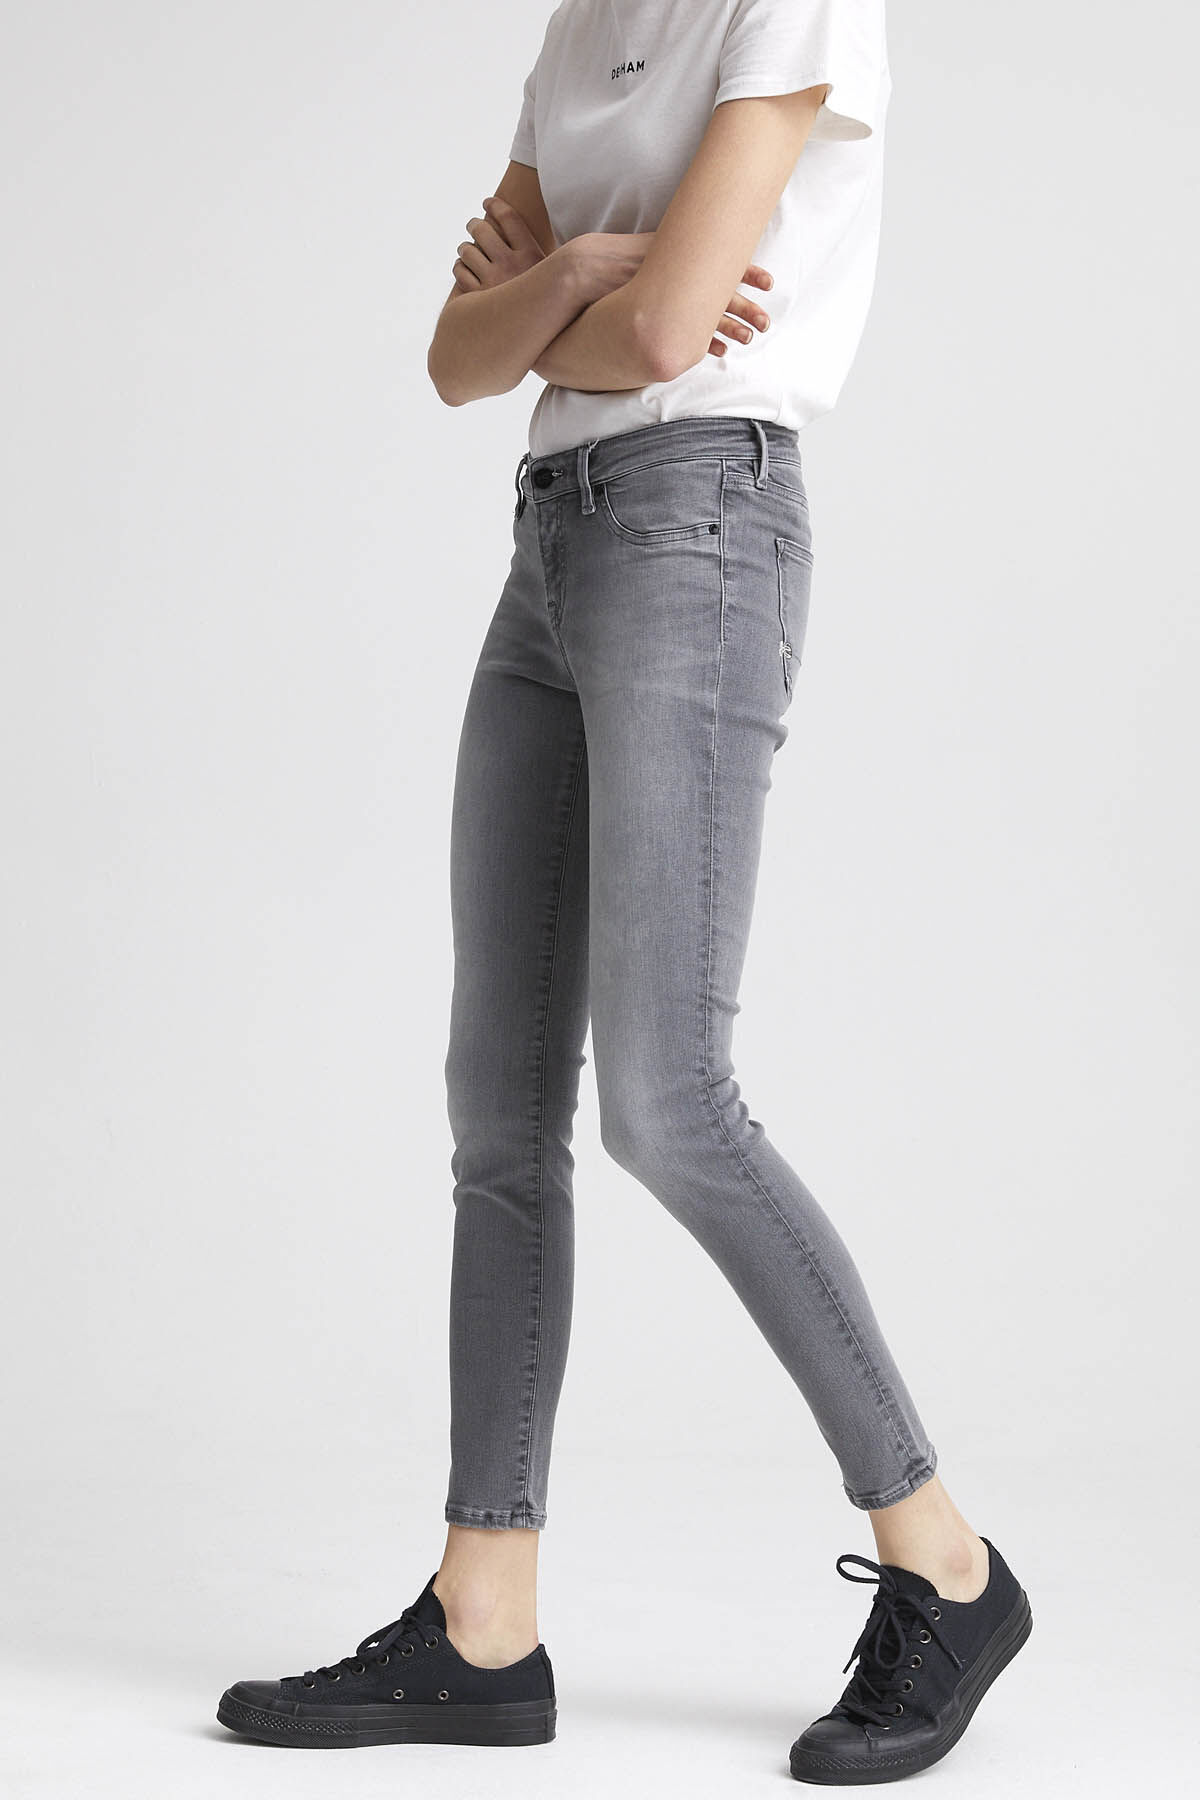 SPRAY Light Fade Grey Denim  - Mid-rise, Tight Fit